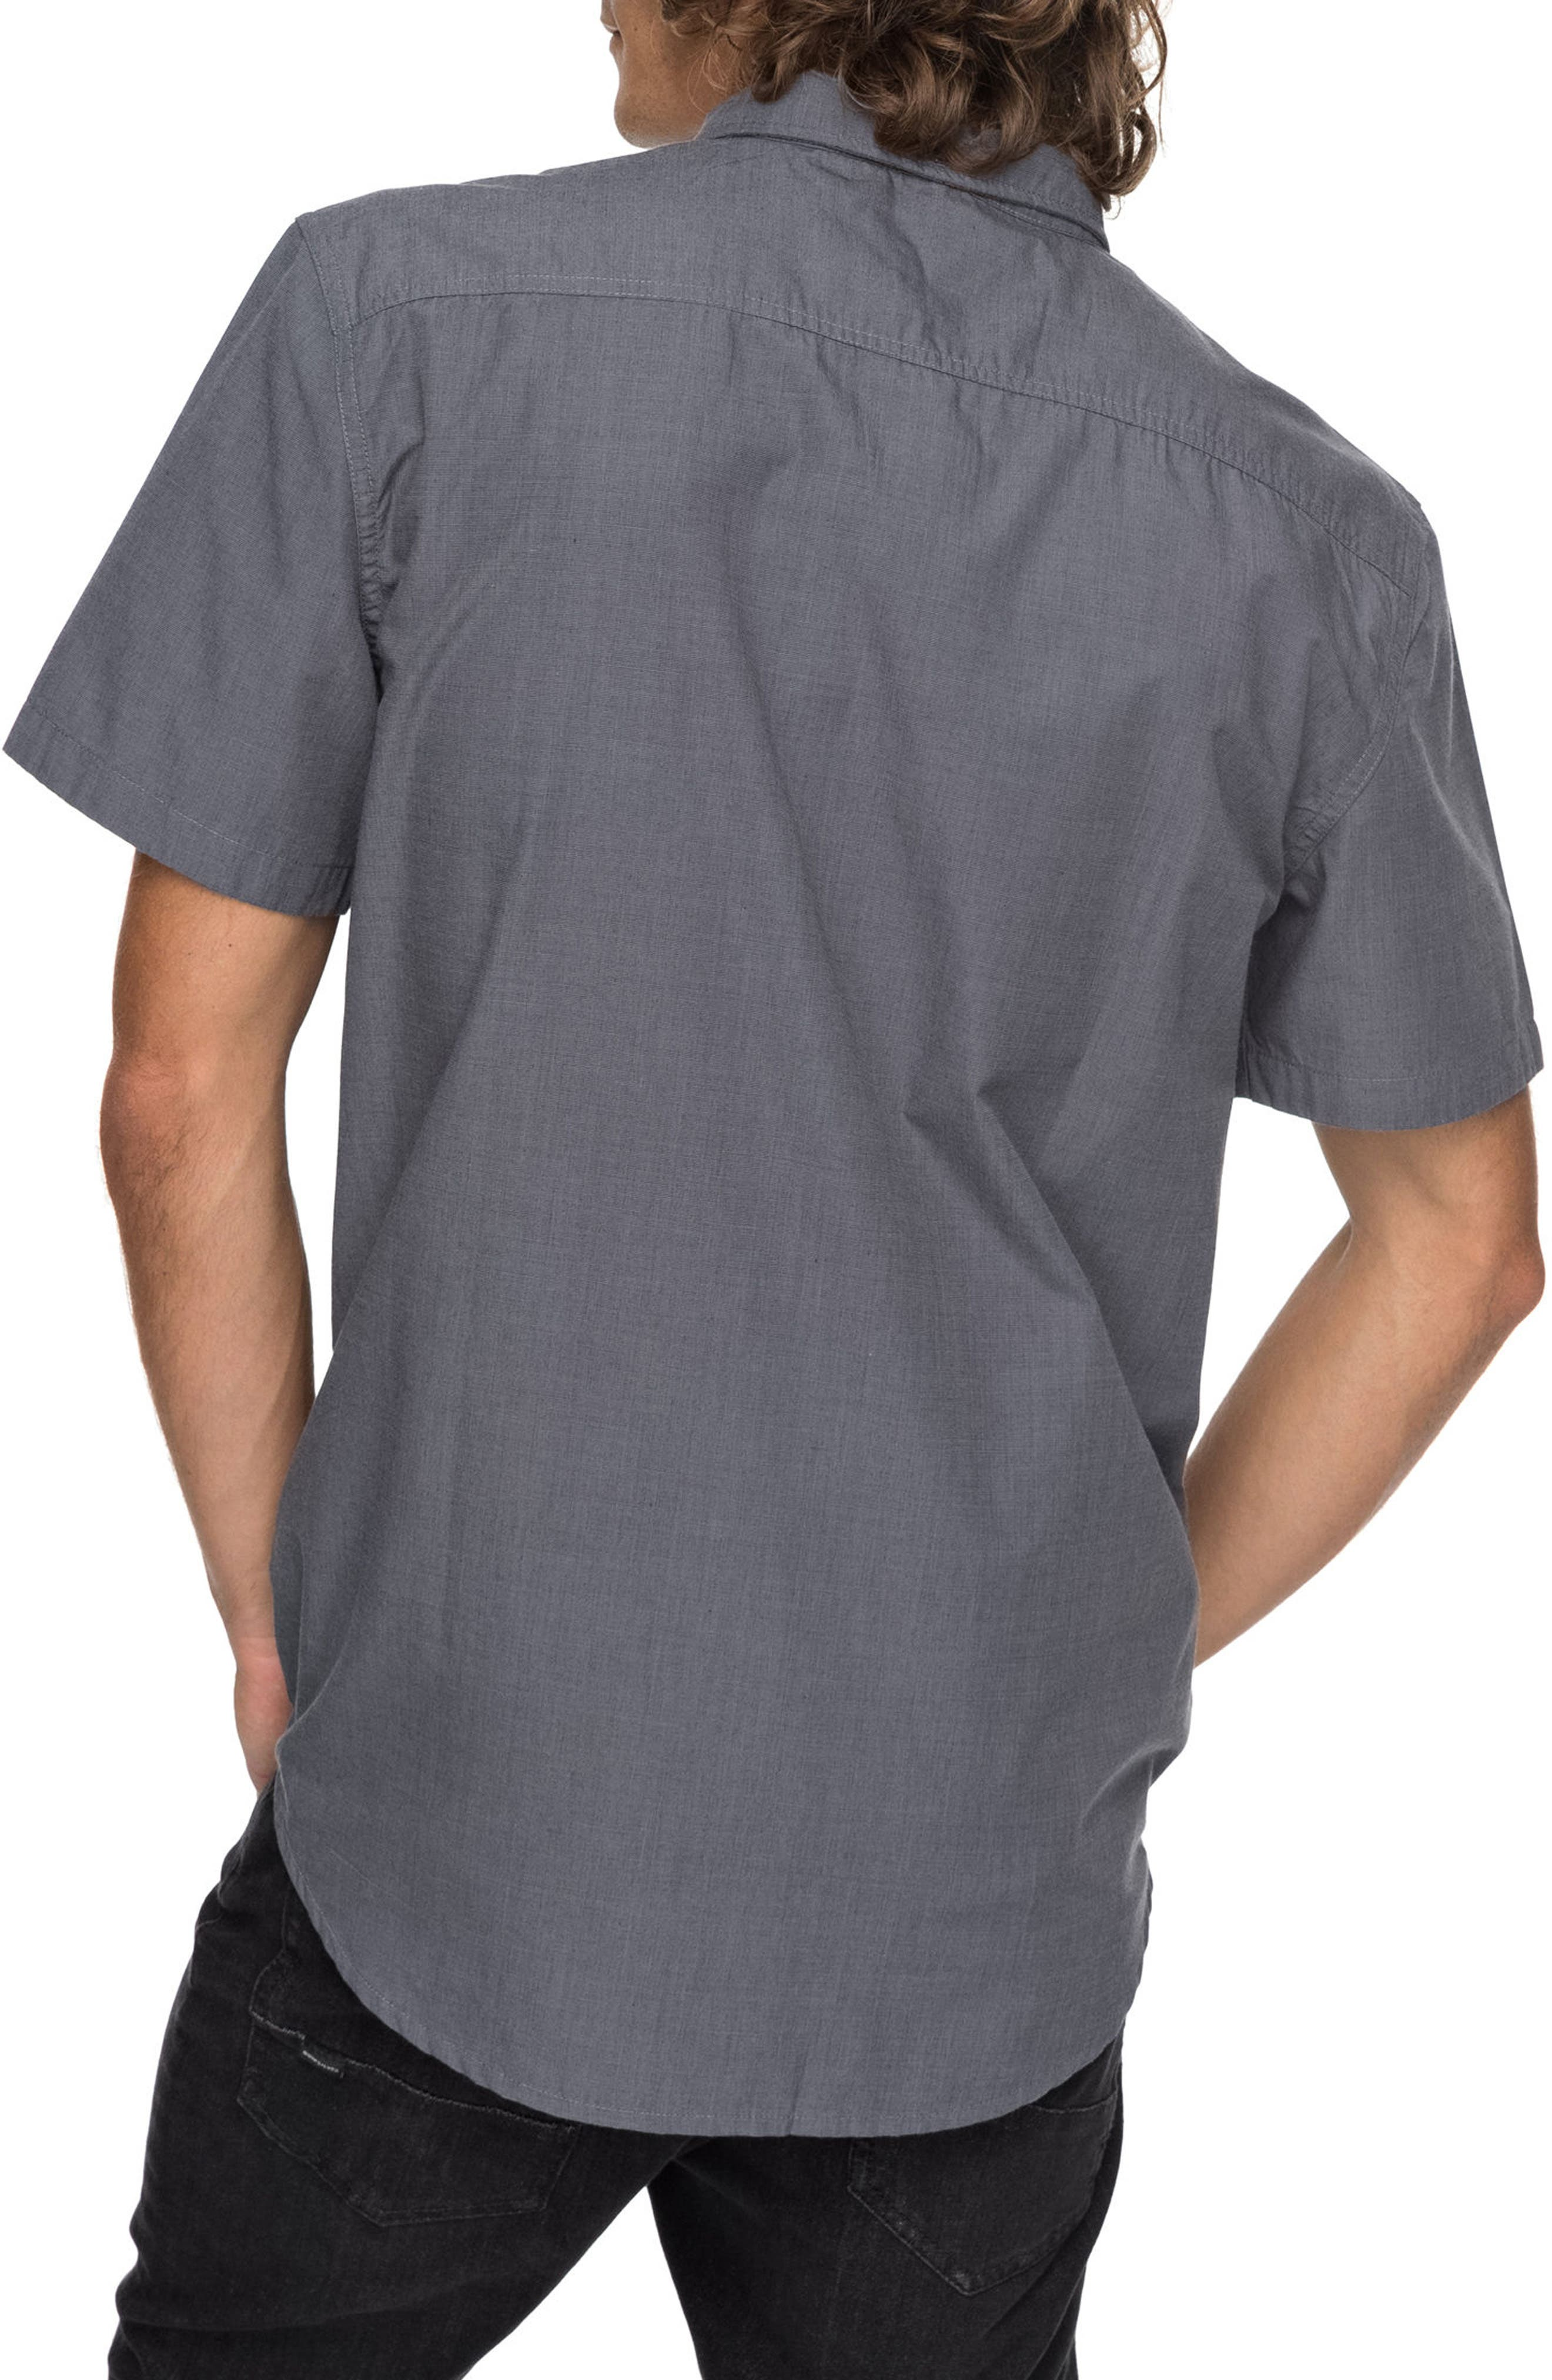 Valley Grove Woven Shirt,                             Alternate thumbnail 2, color,                             020